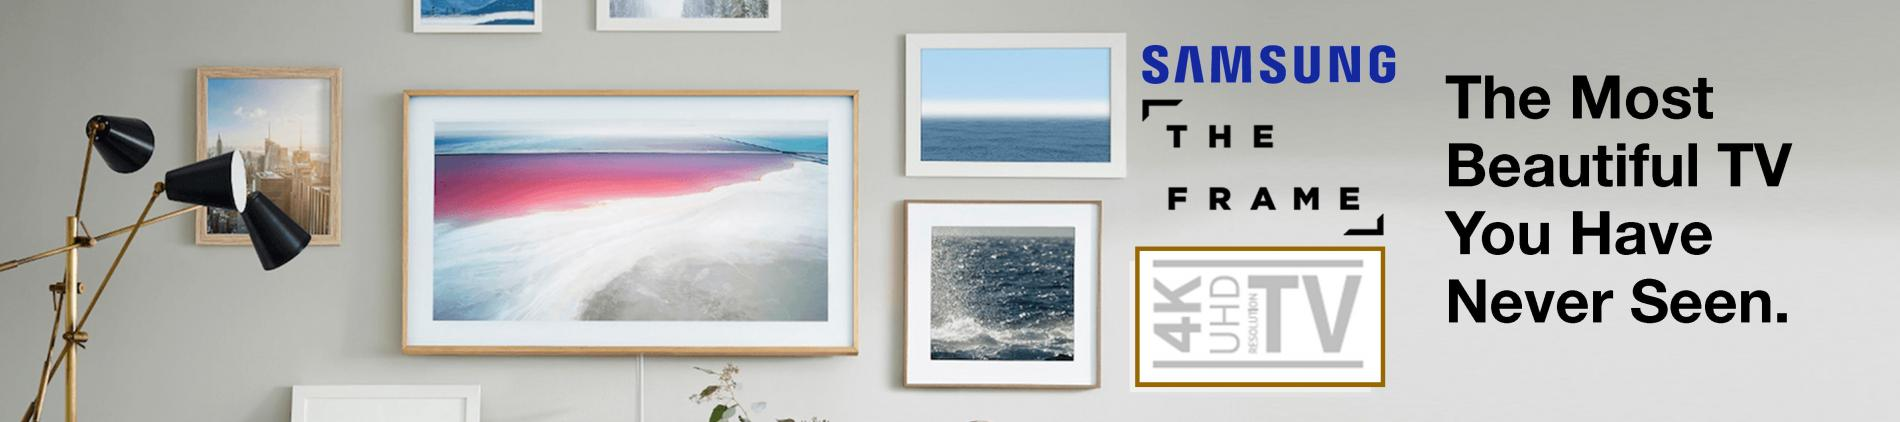 Samsung The Frame 4K UHD TV that looks like your art when it is turned off.